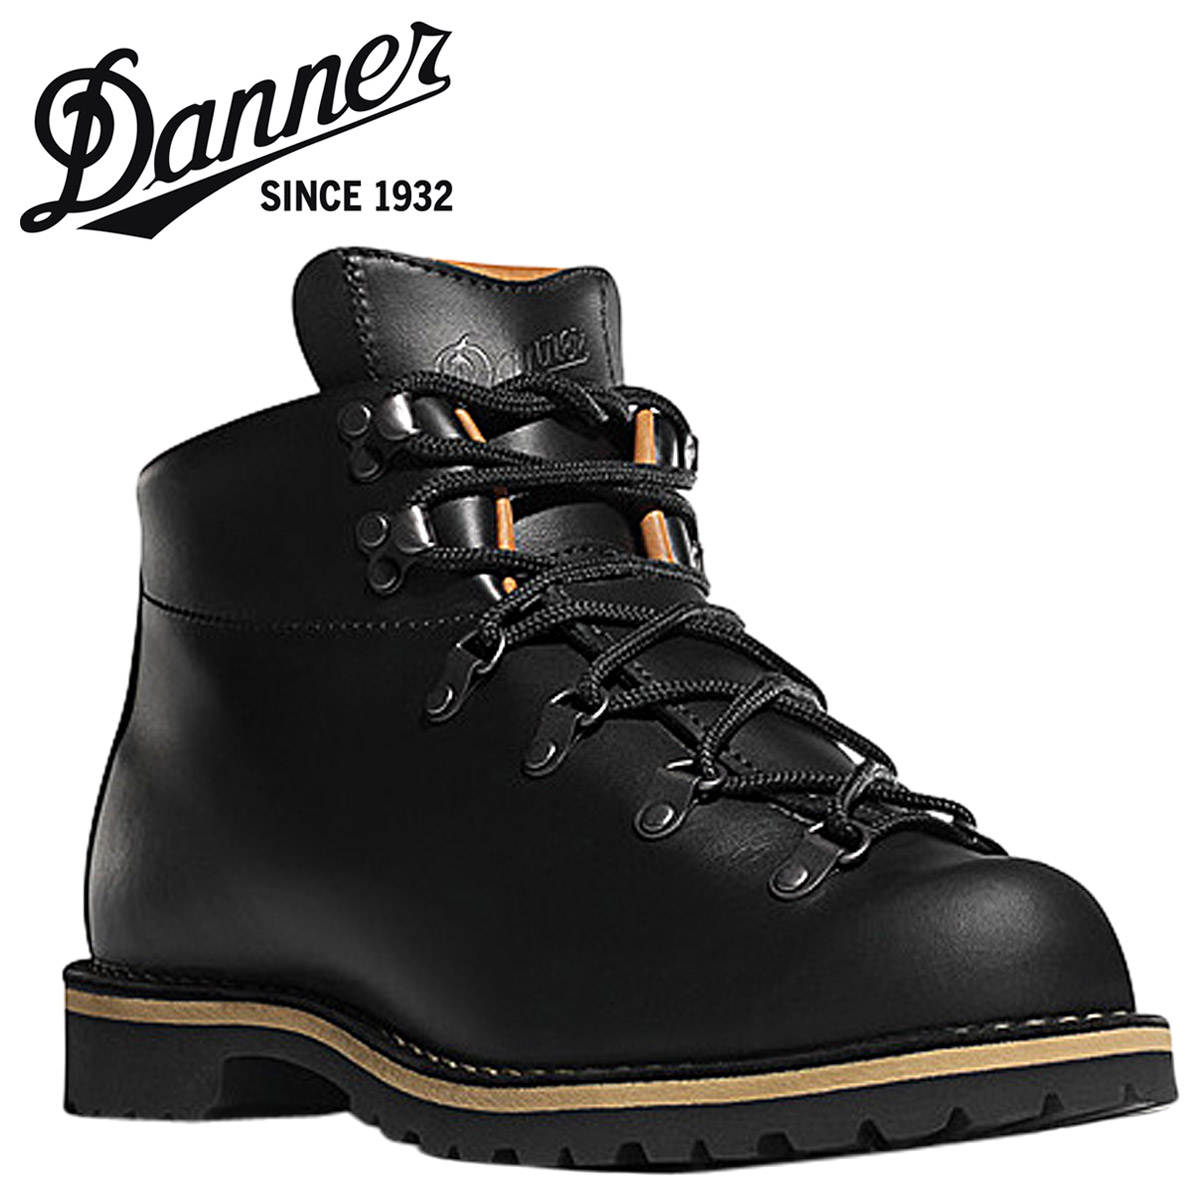 Sugar Online Shop | Rakuten Global Market: Danner Danner mountain ...